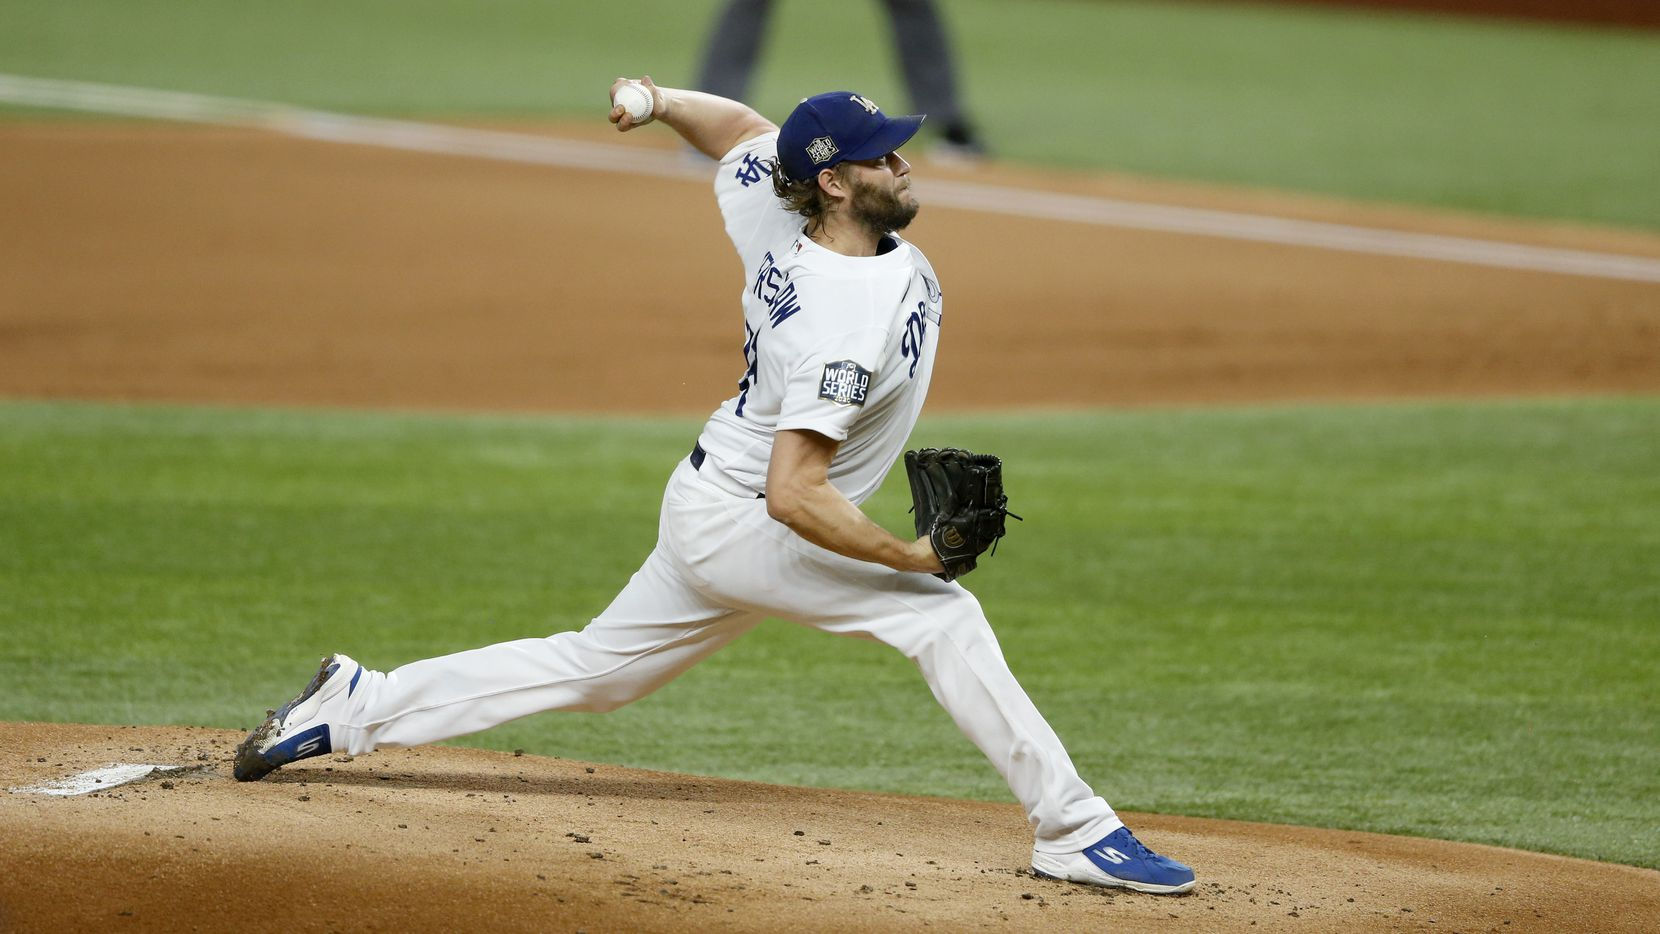 Los Angeles Dodgers starting pitcher Clayton Kershaw (22) pitches in the first inning against the Tampa Bay Rays in game one of the World Series at Globe Life Field on Monday, October 20, 2020 in Arlington, Texas.